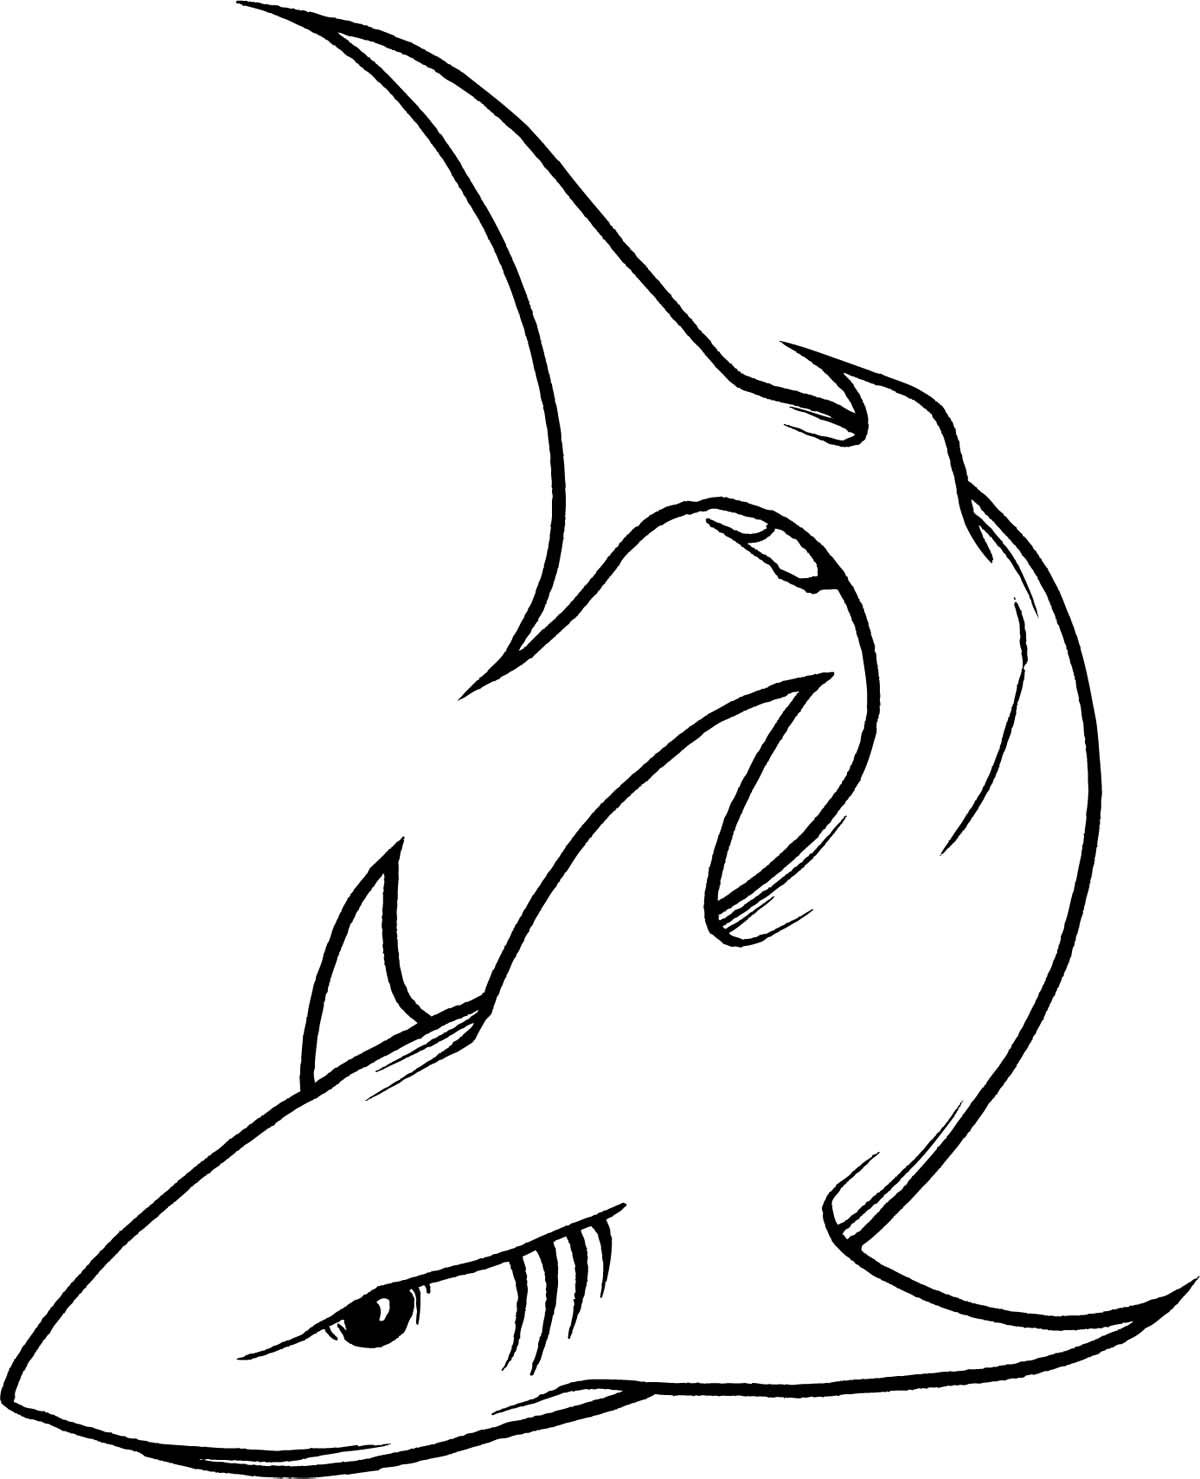 medium resolution of hammerhead shark outline clipart panda free clipart images